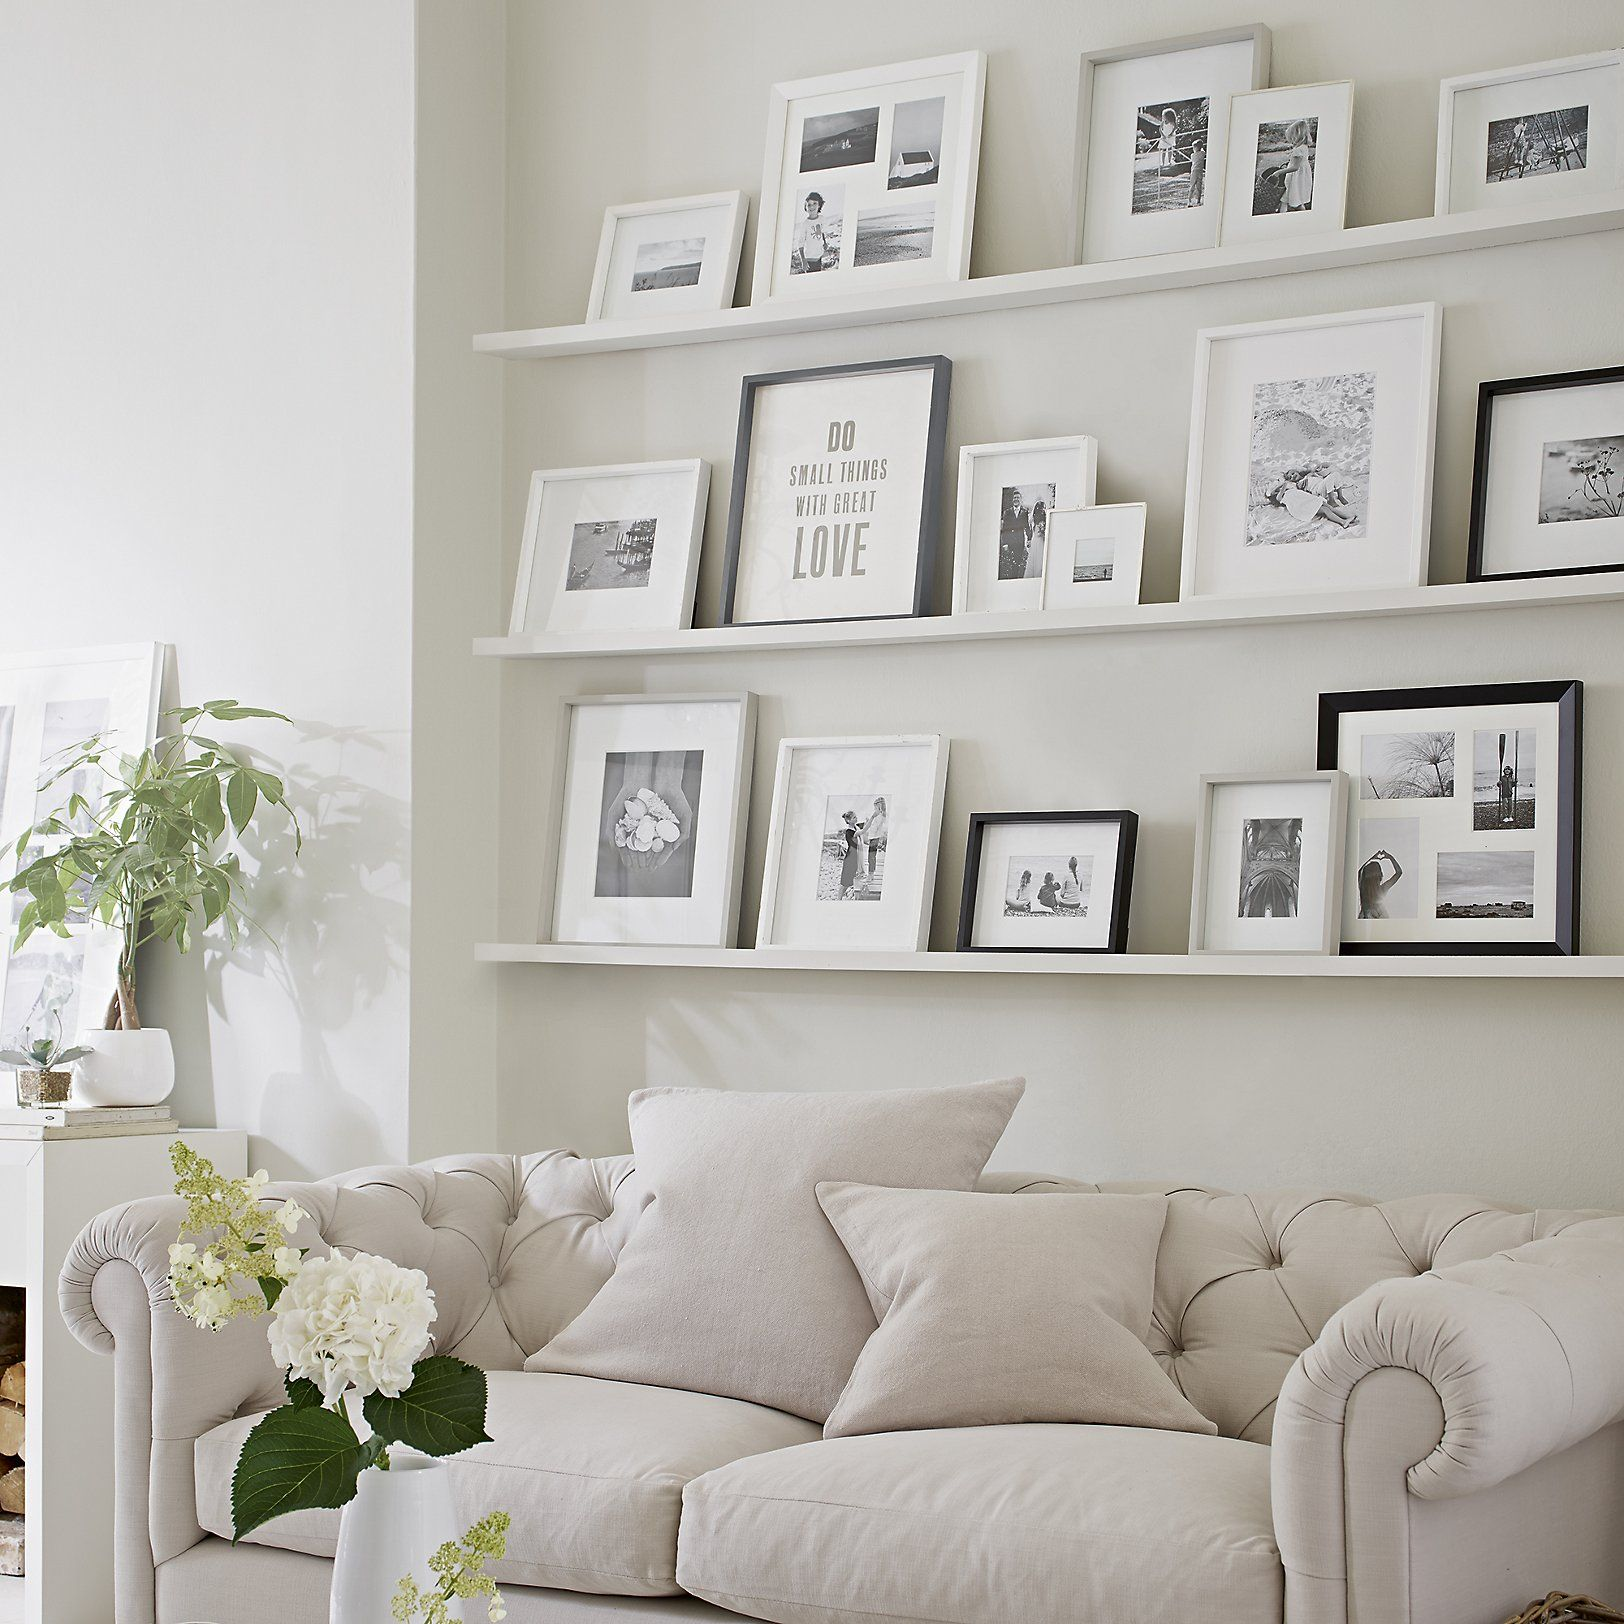 All white picture frame arrangement decor home decor interiors living room